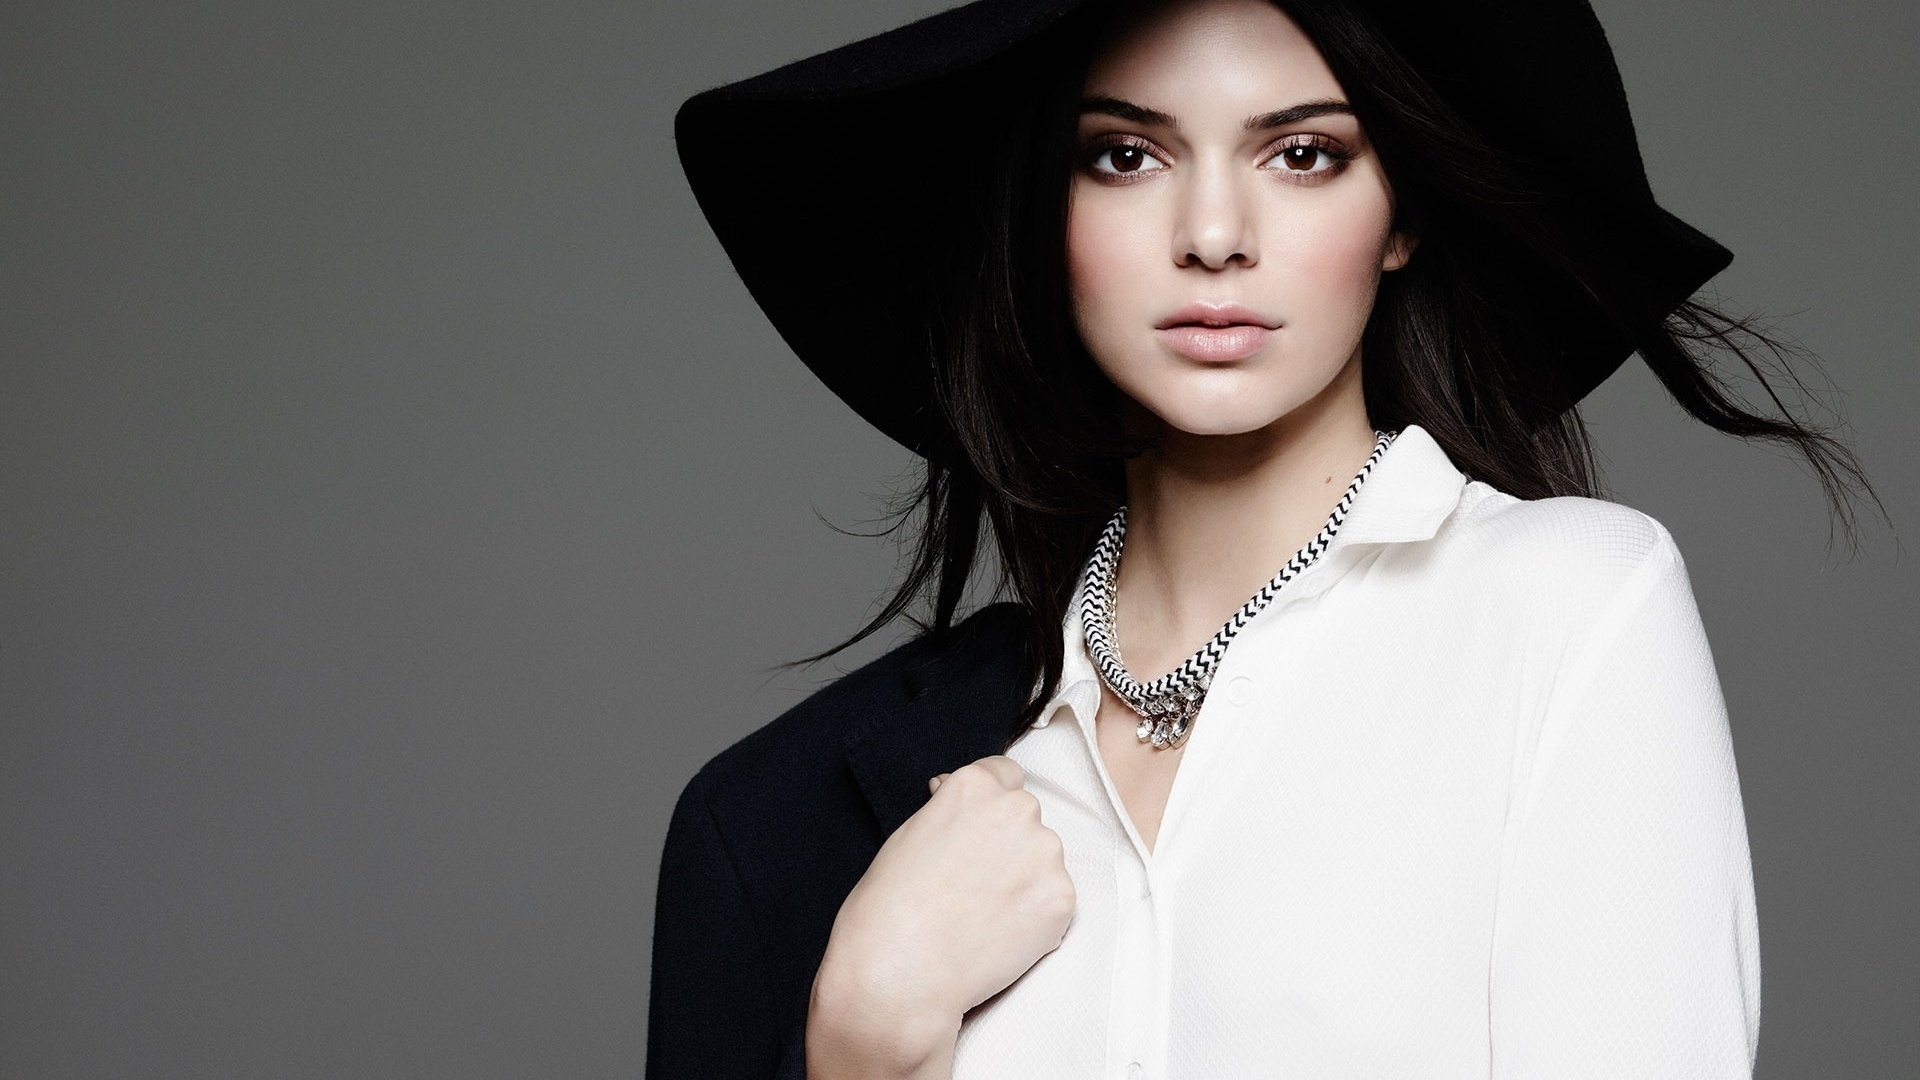 Kendall Jenner Wallpaper Picture hd